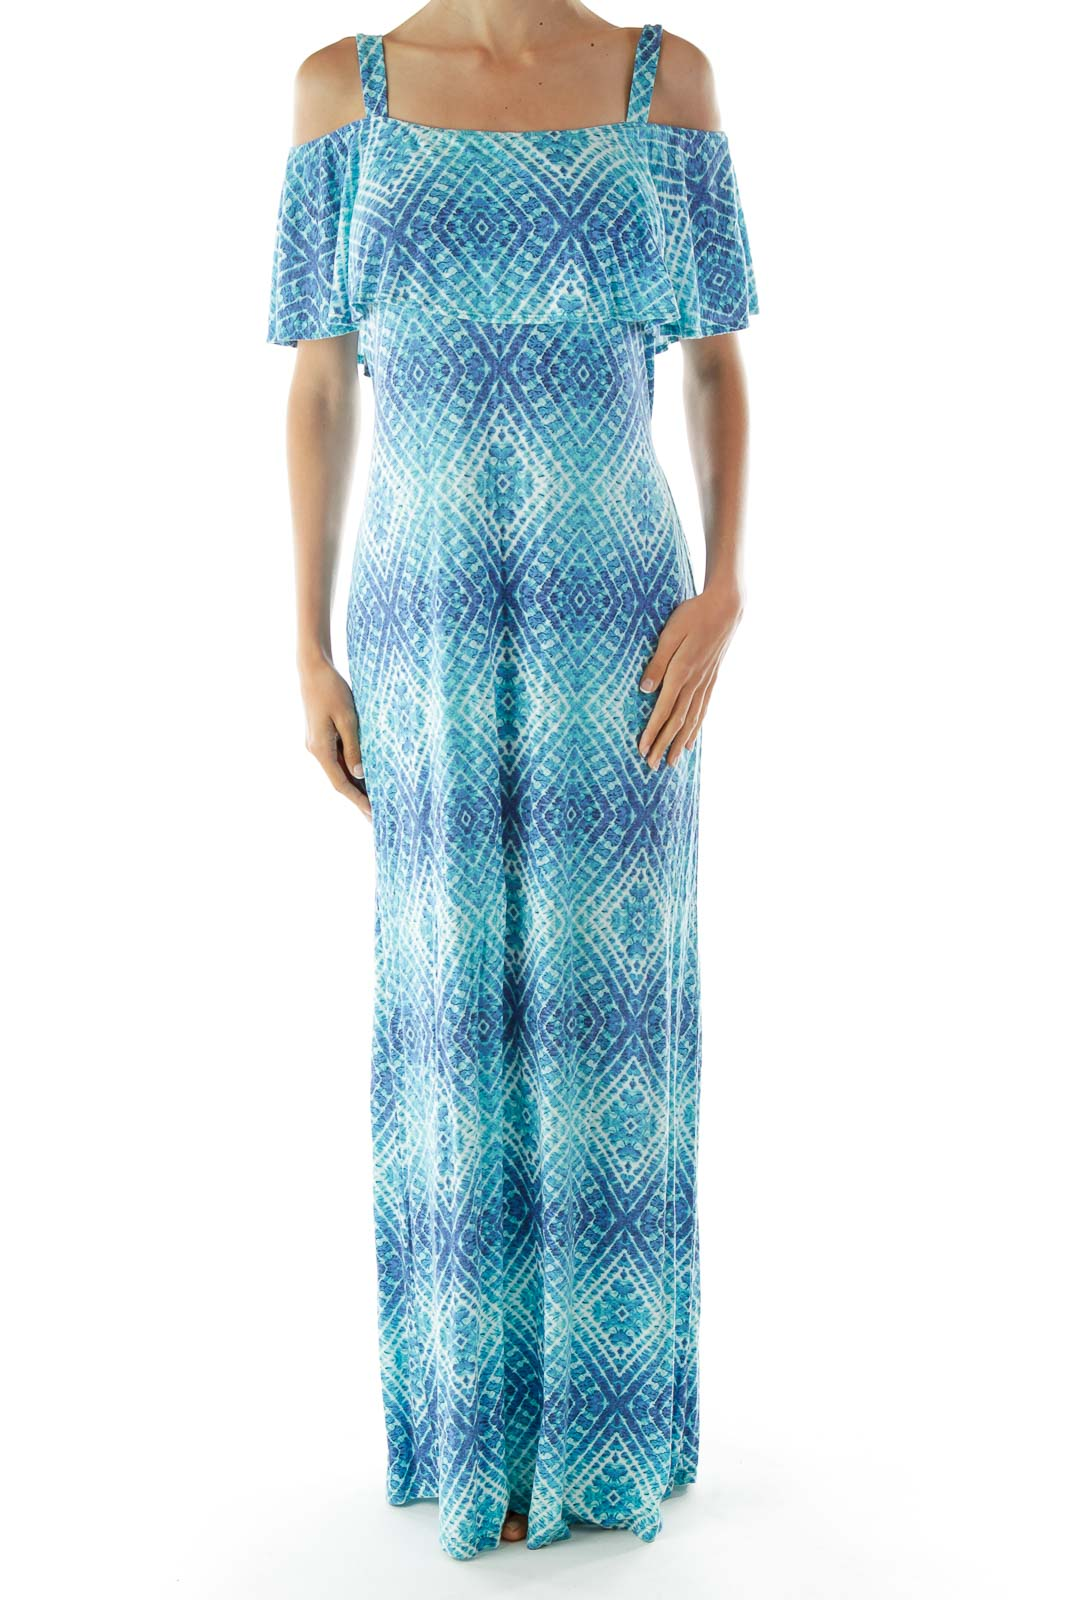 Blue White Tie Dye Cold Shoulder Day Dress